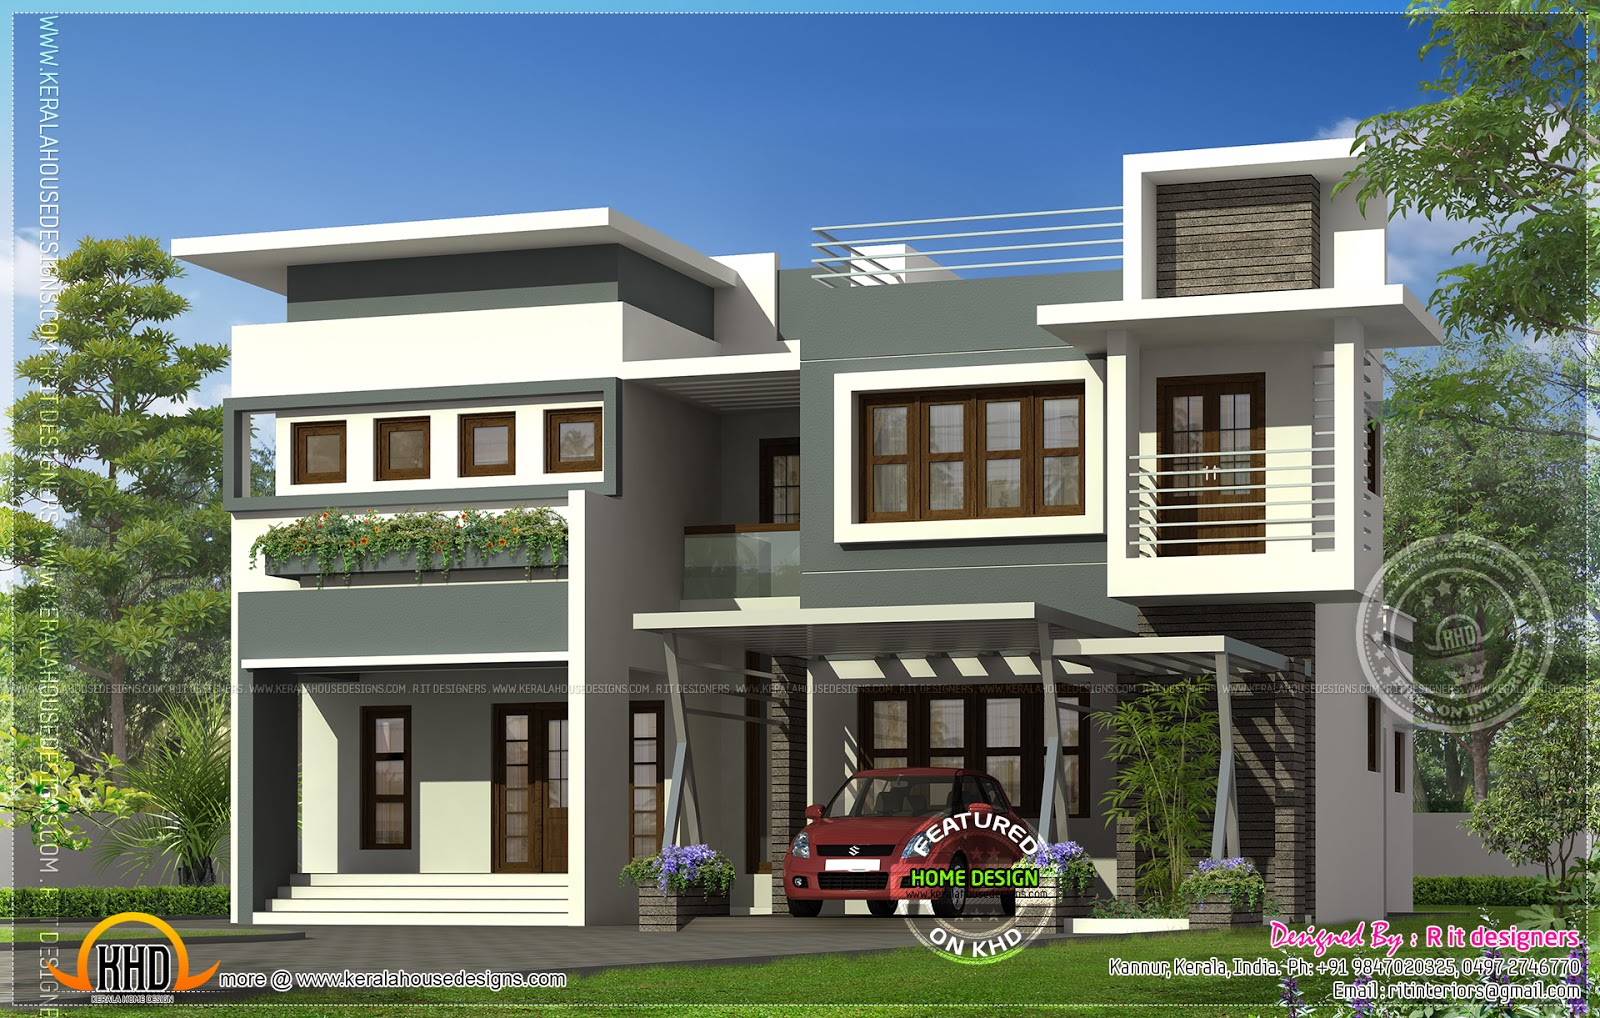 Modern contemporary residence design home kerala plans for Contemporary home plans